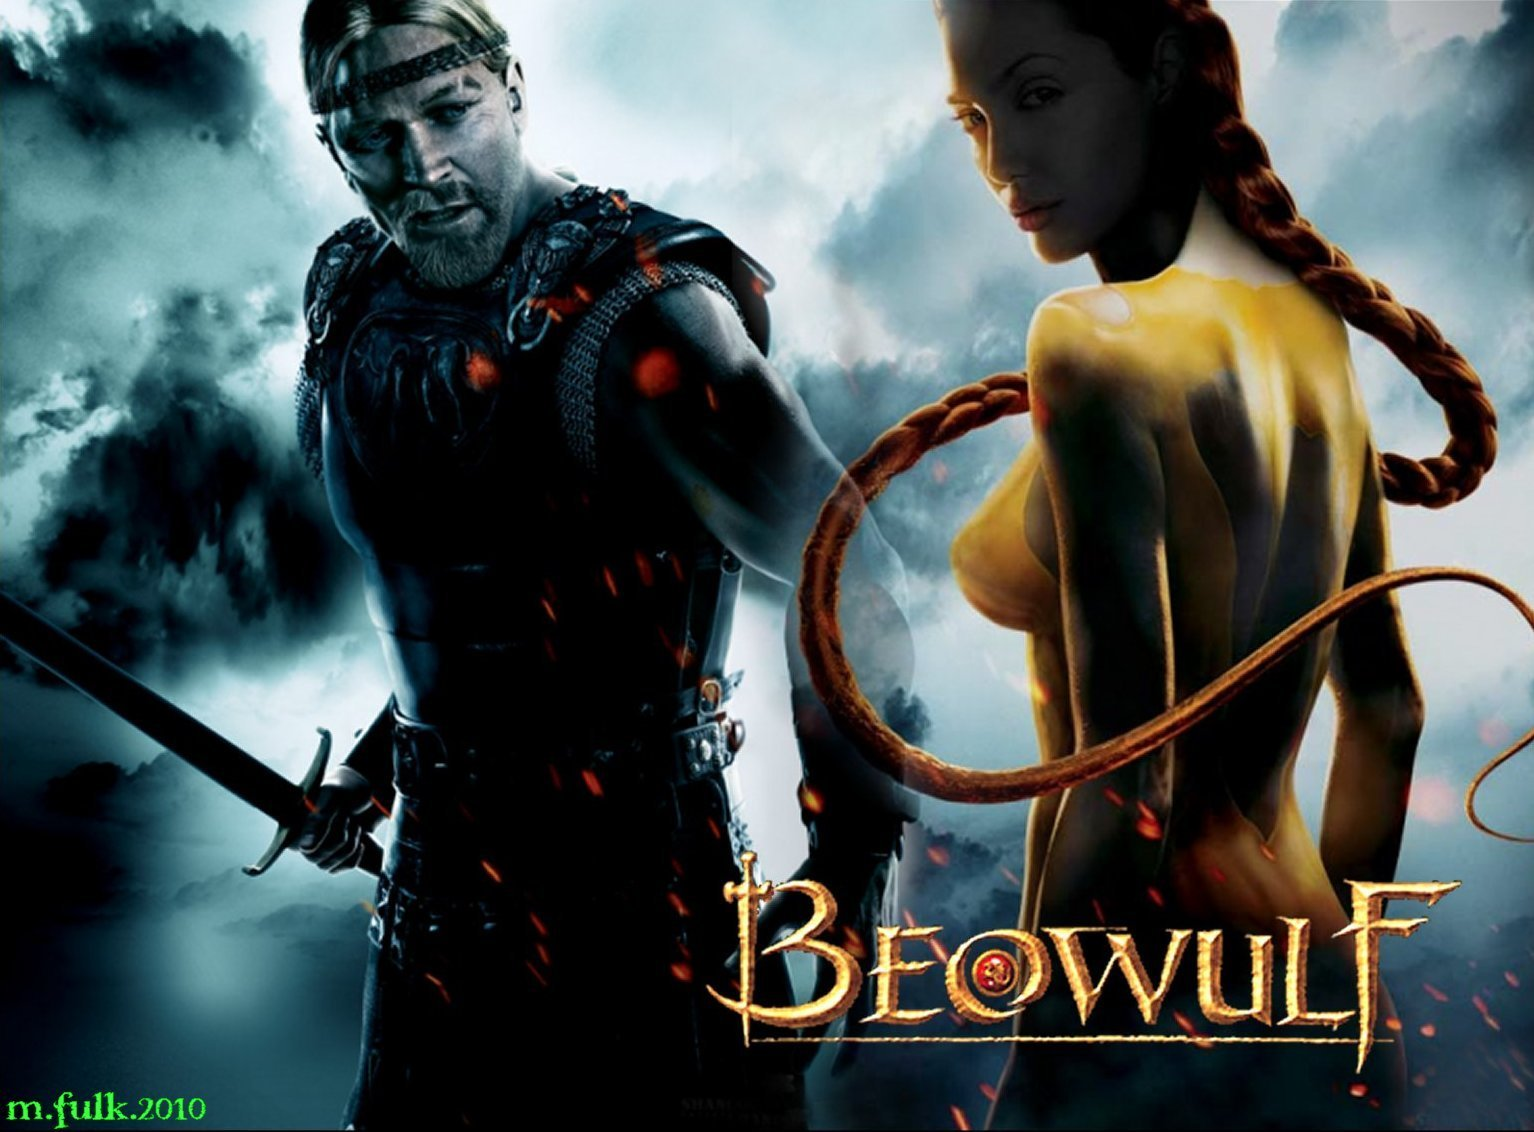 the heroic acts of beowulf that classifies him as noble person